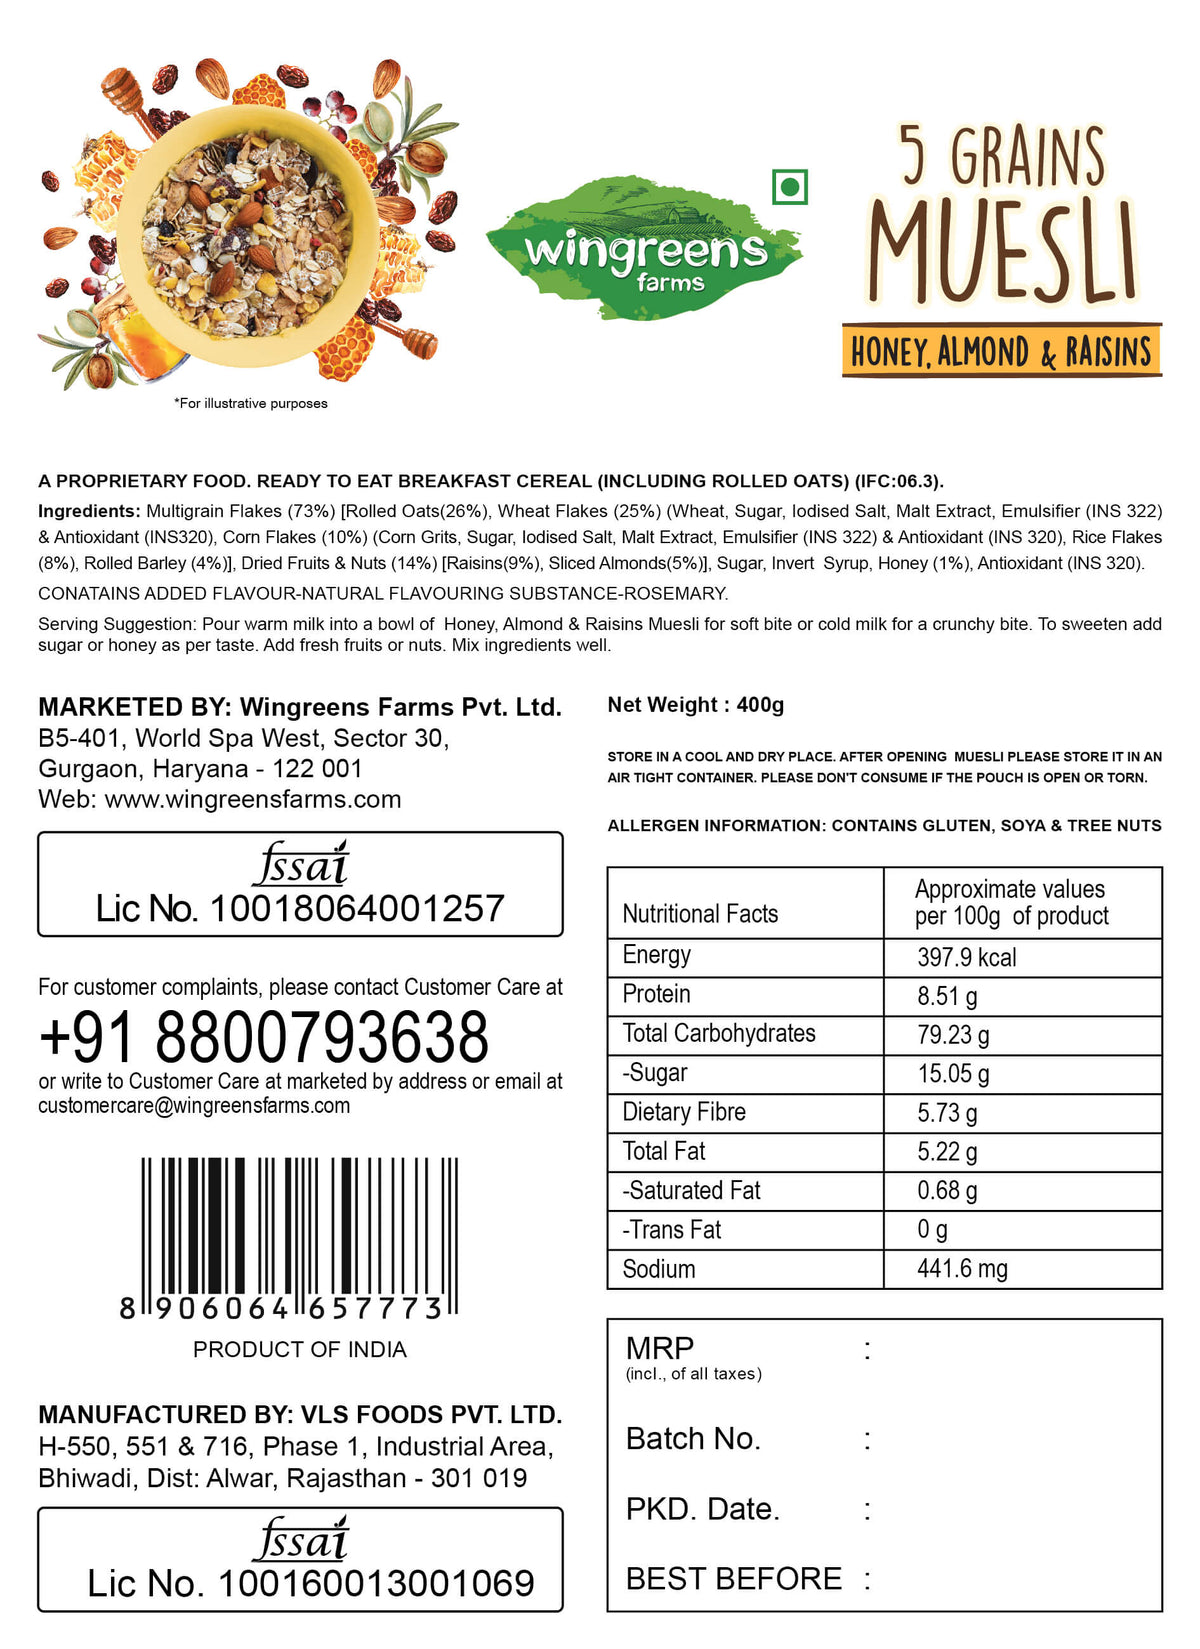 5-Grains Muesli - Honey Almonds & Raisins (400g)